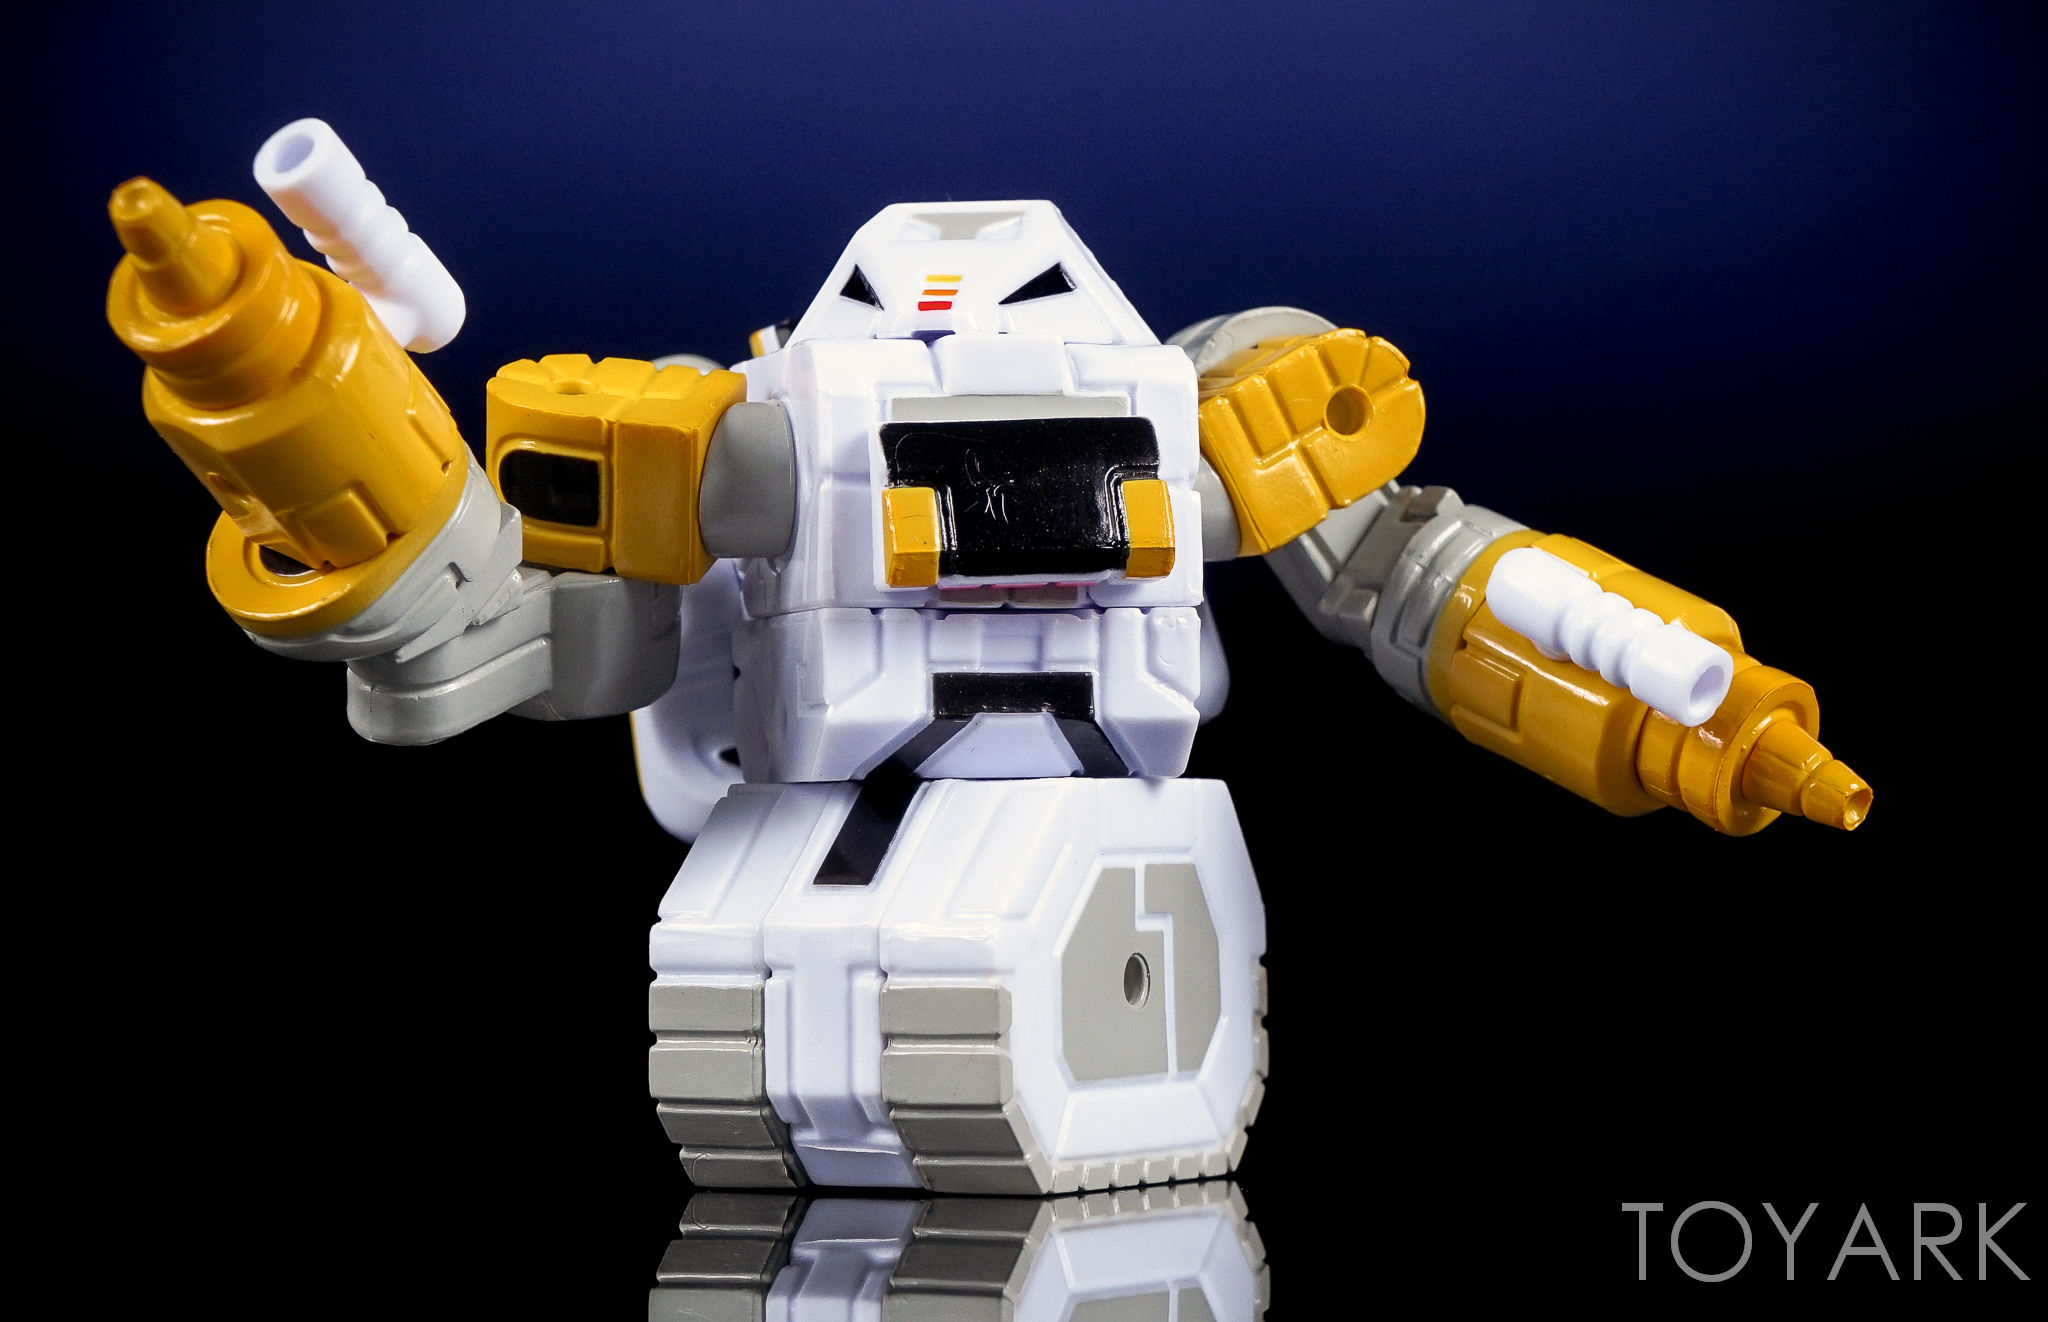 http://news.toyark.com/wp-content/uploads/sites/4/2016/10/Toyfinity-Roboforce-and-Zeroids-009.jpg